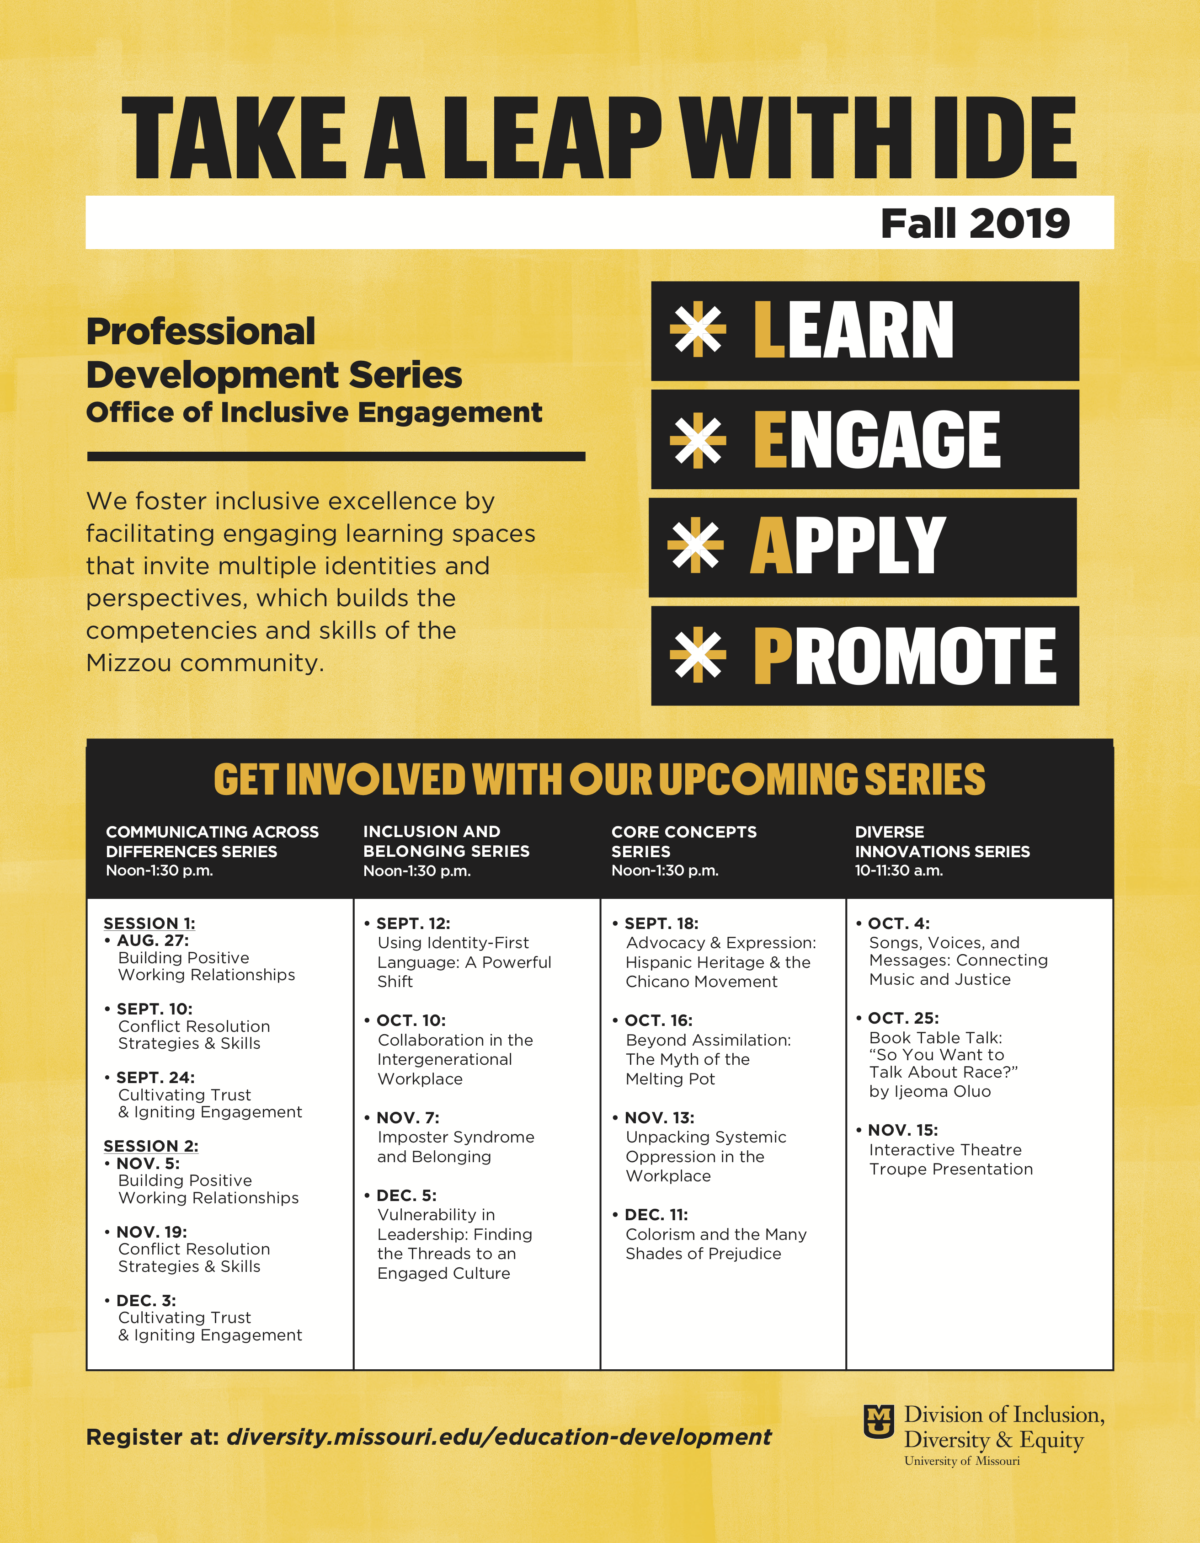 LEAP Fall 2019 Offerings - Text provided in post